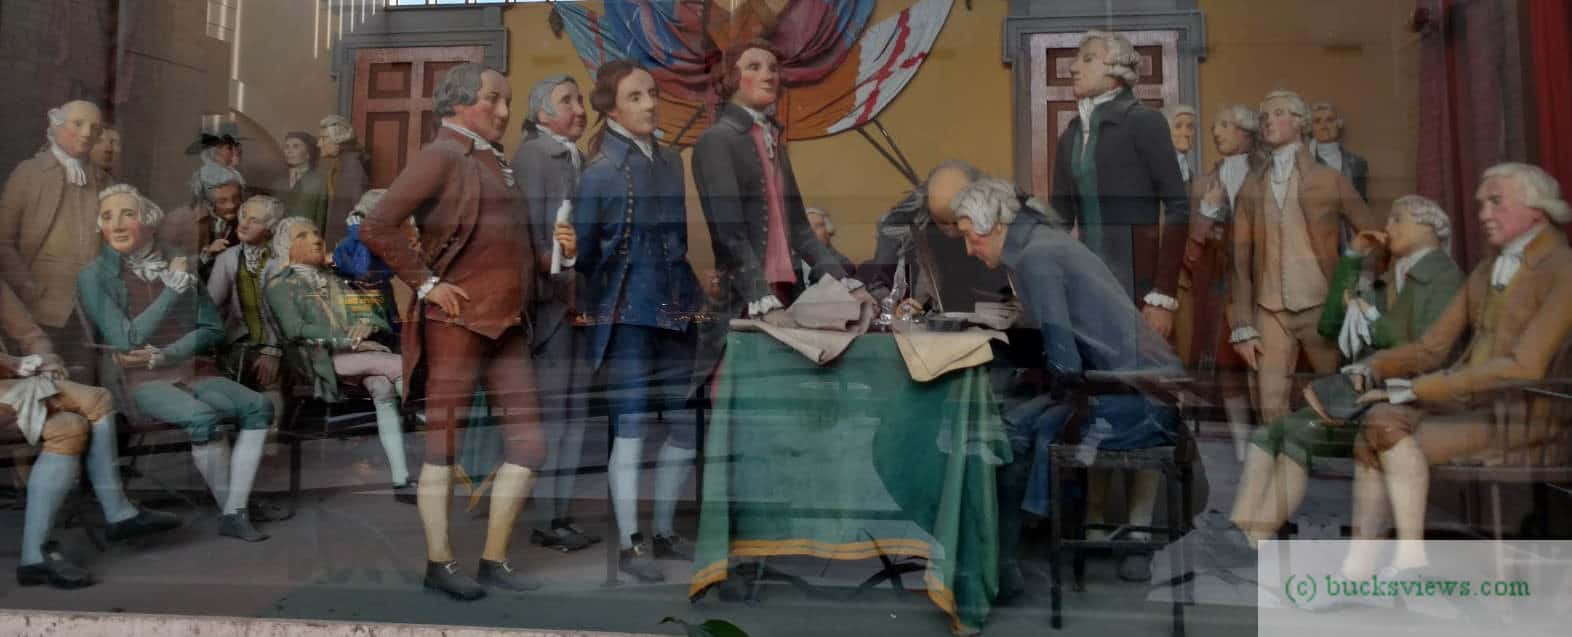 Signing the Declaration of Independance diorama in Neshaminy Mall